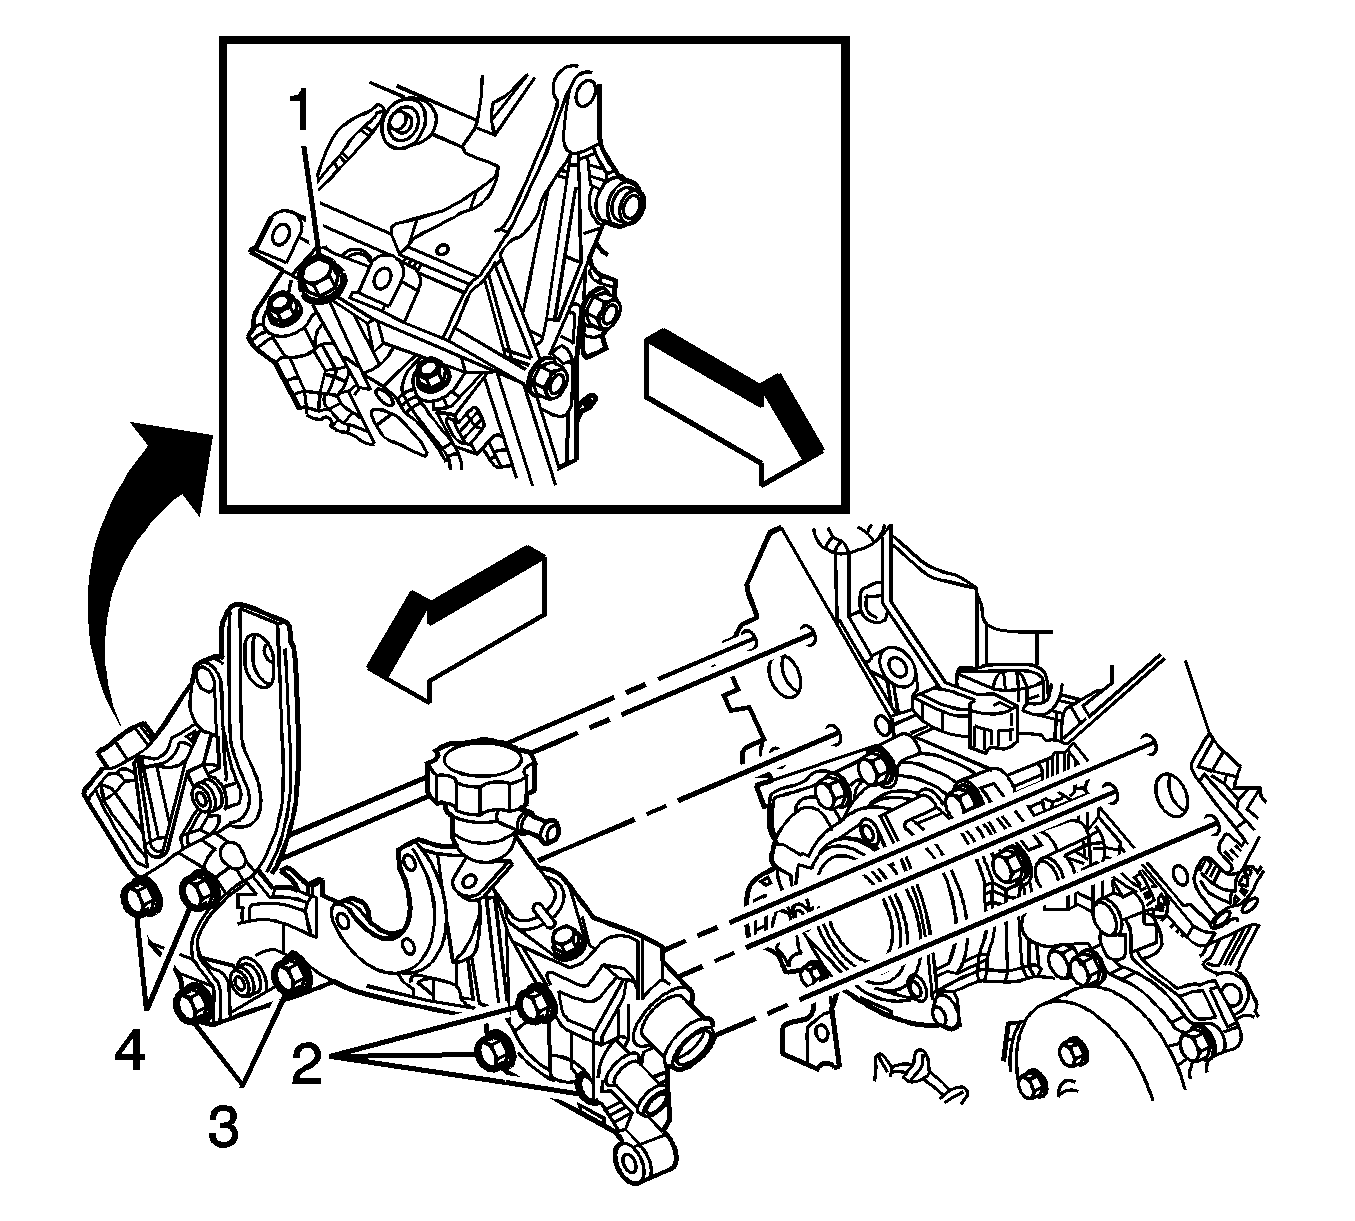 hight resolution of diagram 2006 impala 3 5 engine wiring diagram third level rh 9 20 jacobwinterstein com 2006 chevy impala ss engine diagram 2006 chevy impala 3 9 engine